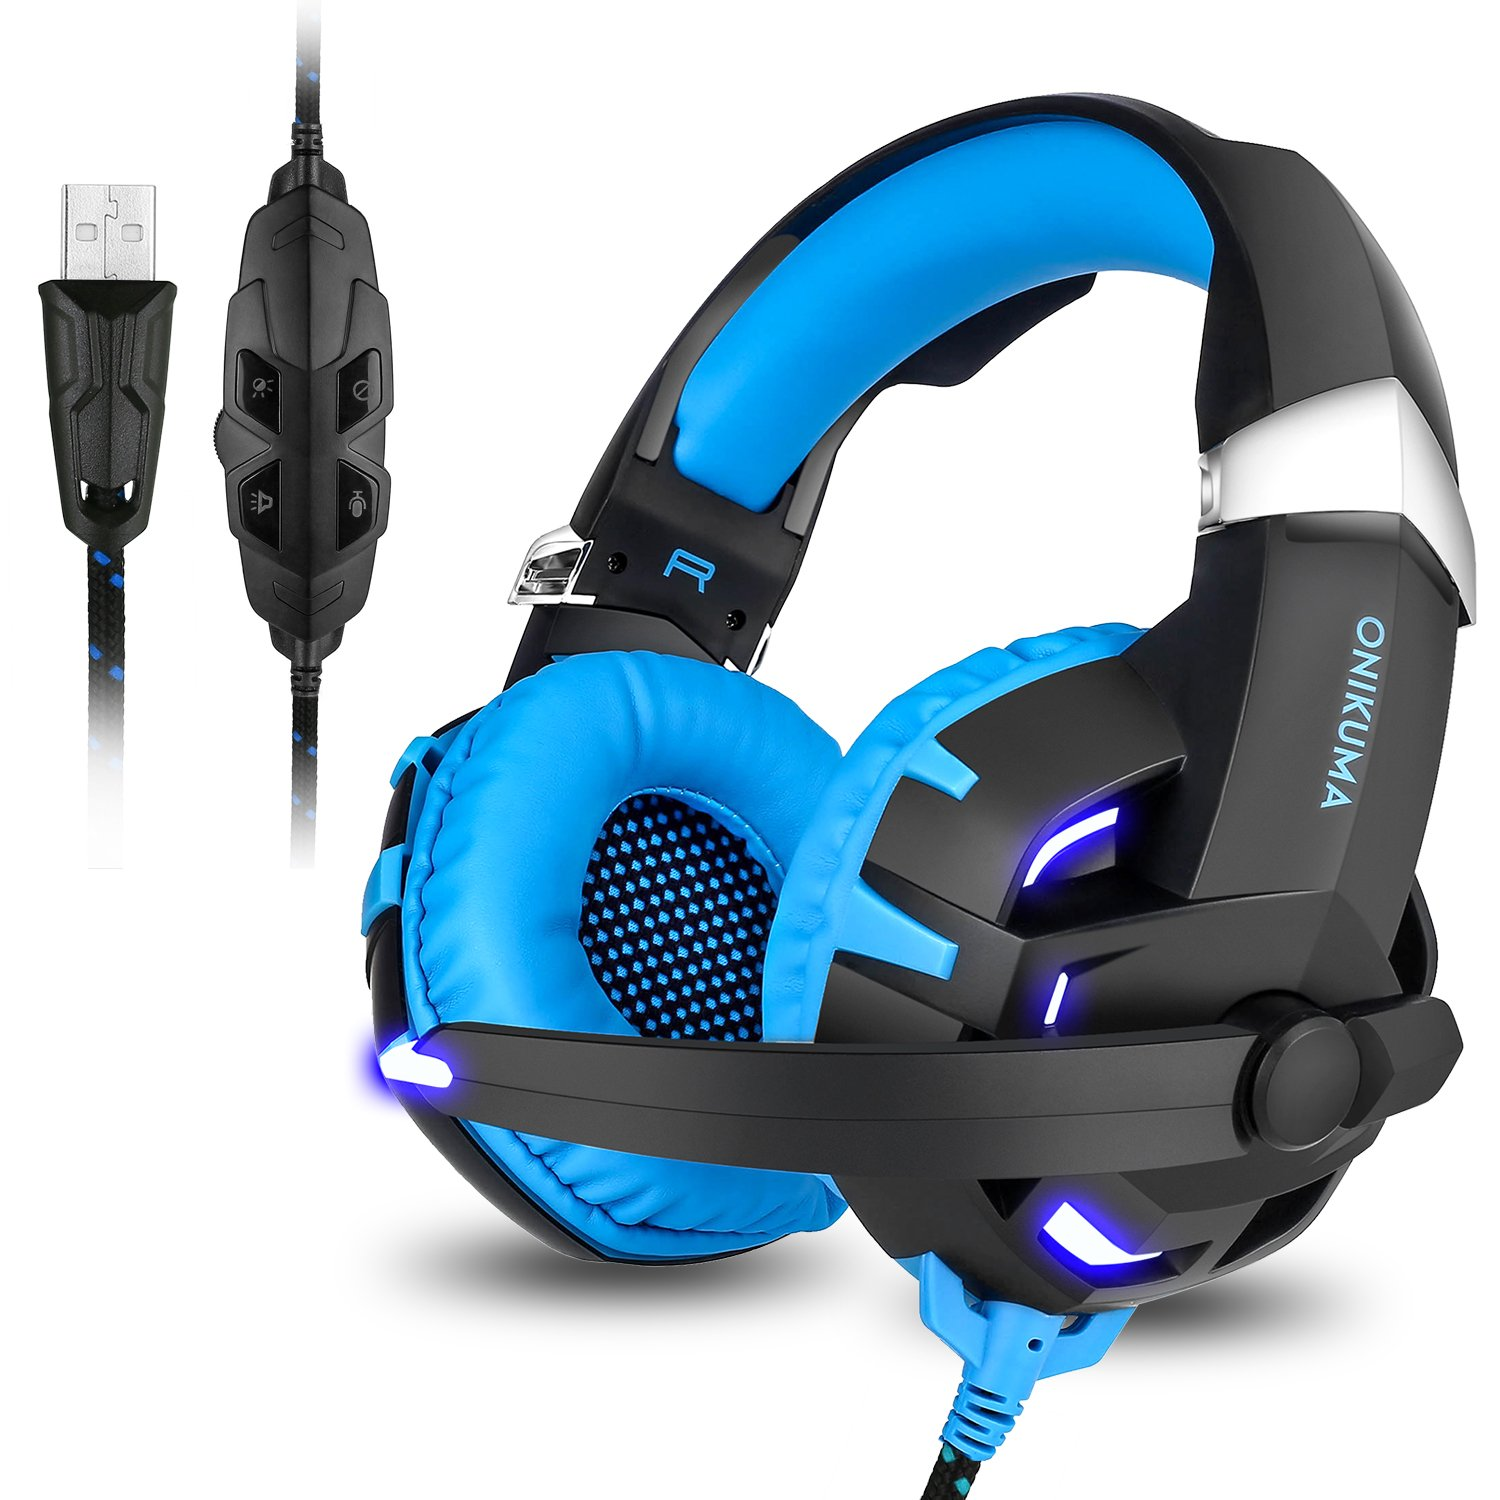 Gaming Headset,7.1 Channel Surround Stereo Sound USB Wired Over Ear Headphones with Noise Cancelling Microphone Separate Volume Control LED Light for PC Mac Laptop Computer(Black Blue) by ONIKUMA